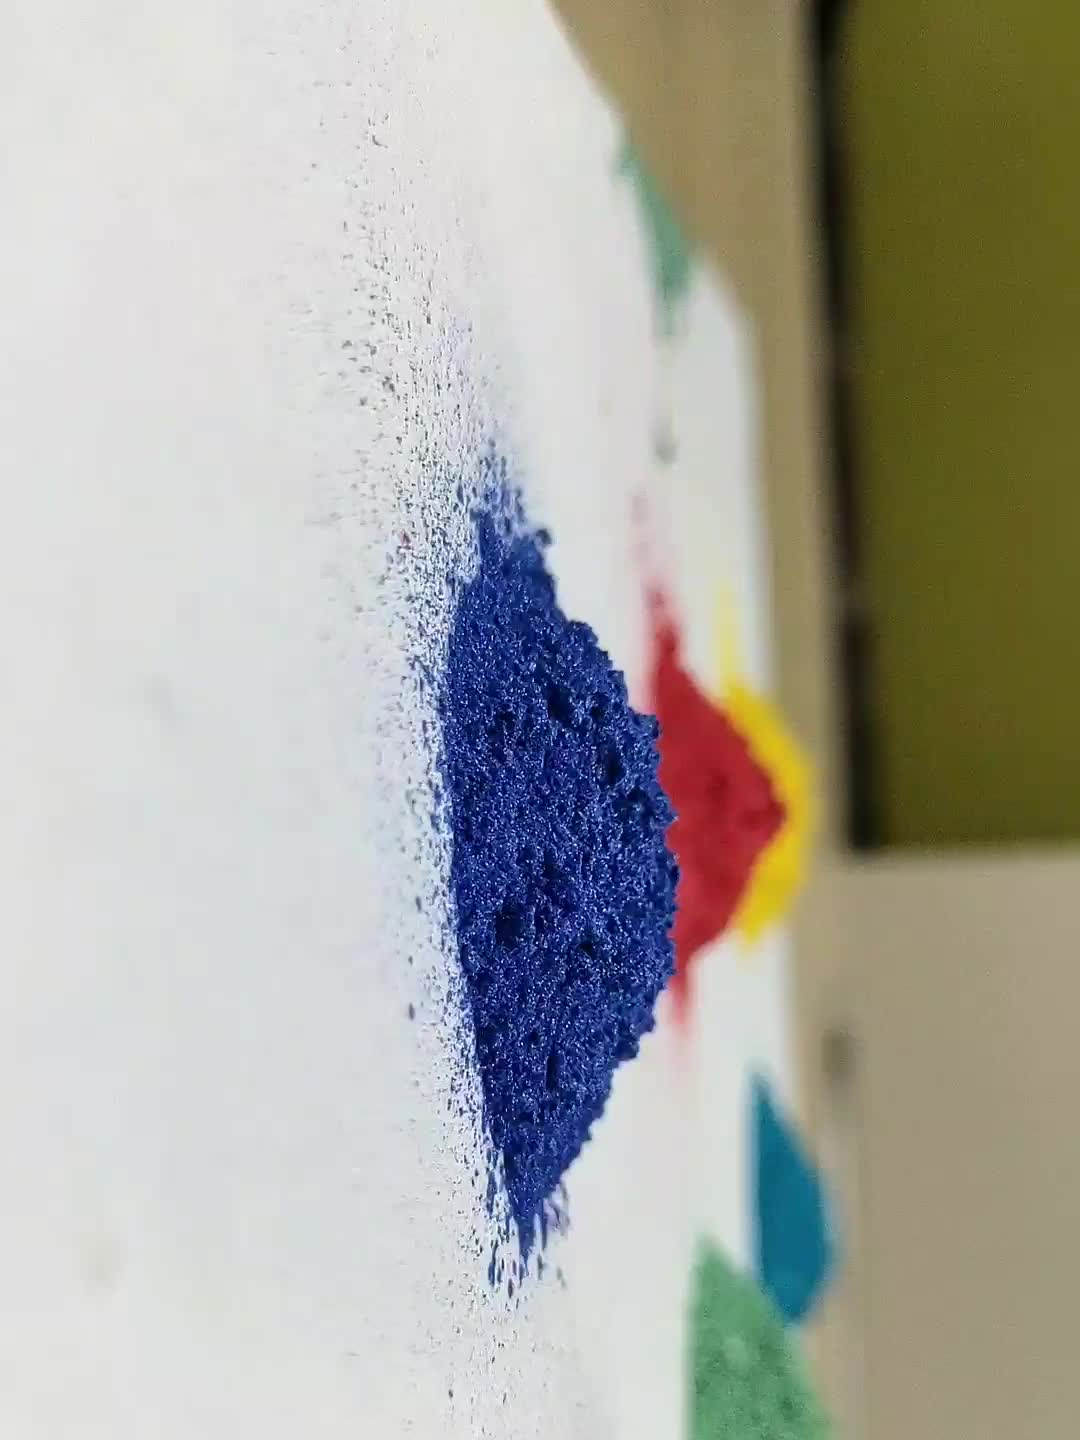 Wholesale Color Pearlescent Pigment Shimmer Mica Titanium Powder Epoxy Resin Pigment Pearl Mica powder for Craft